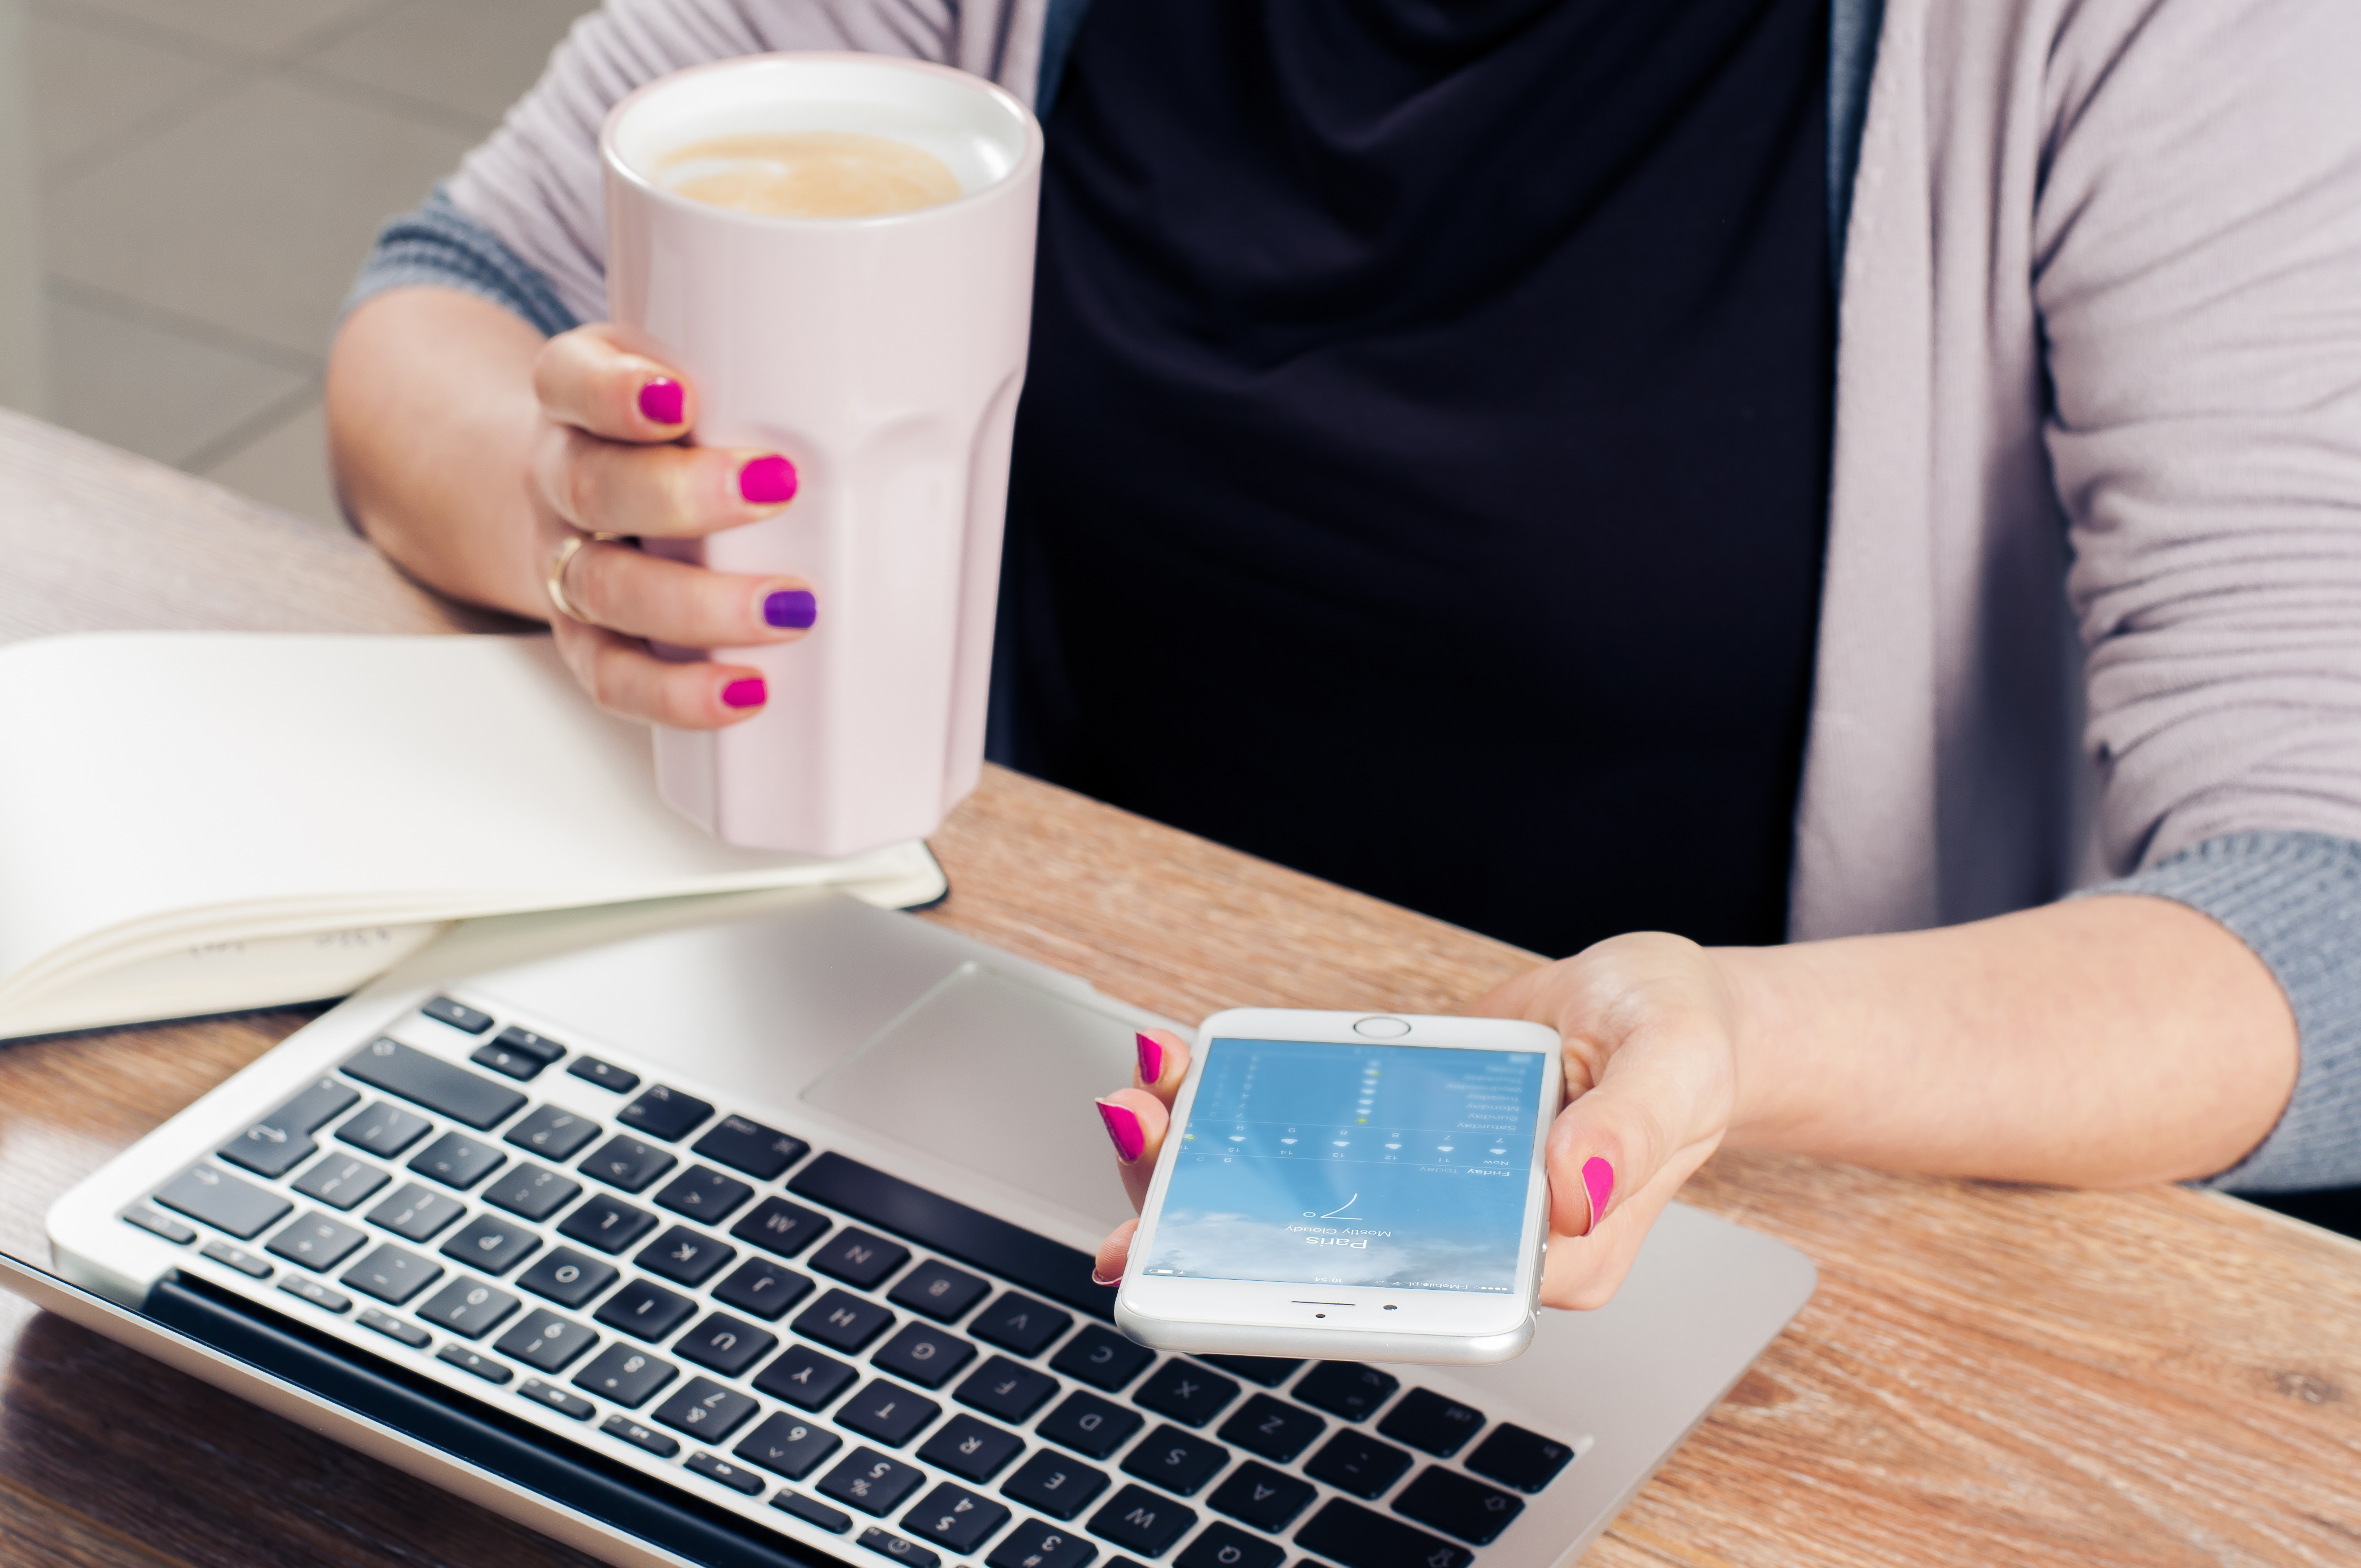 Woman with cup looking at mobile phone and working on laptop